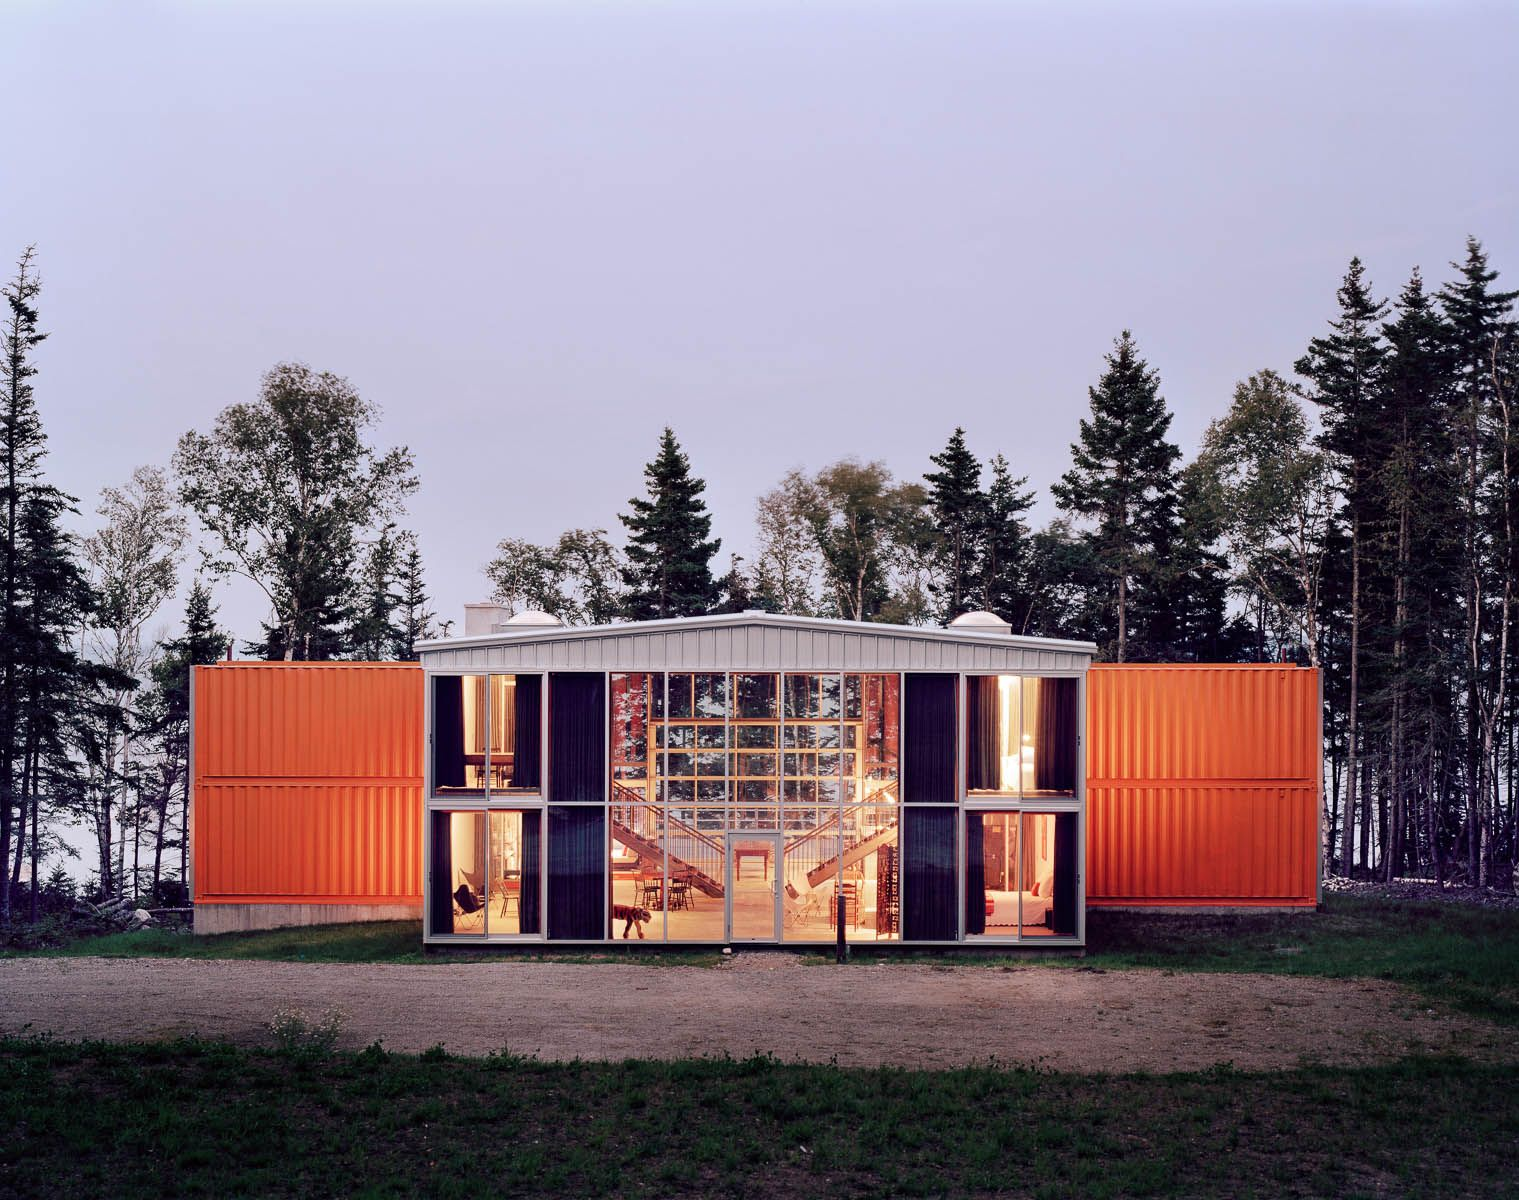 Best Kitchen Gallery: 12 Container House In Blue Hill Maine Idea Sgn By Adam Kalkin 2 of Kalkin Shipping Container Homes  on rachelxblog.com